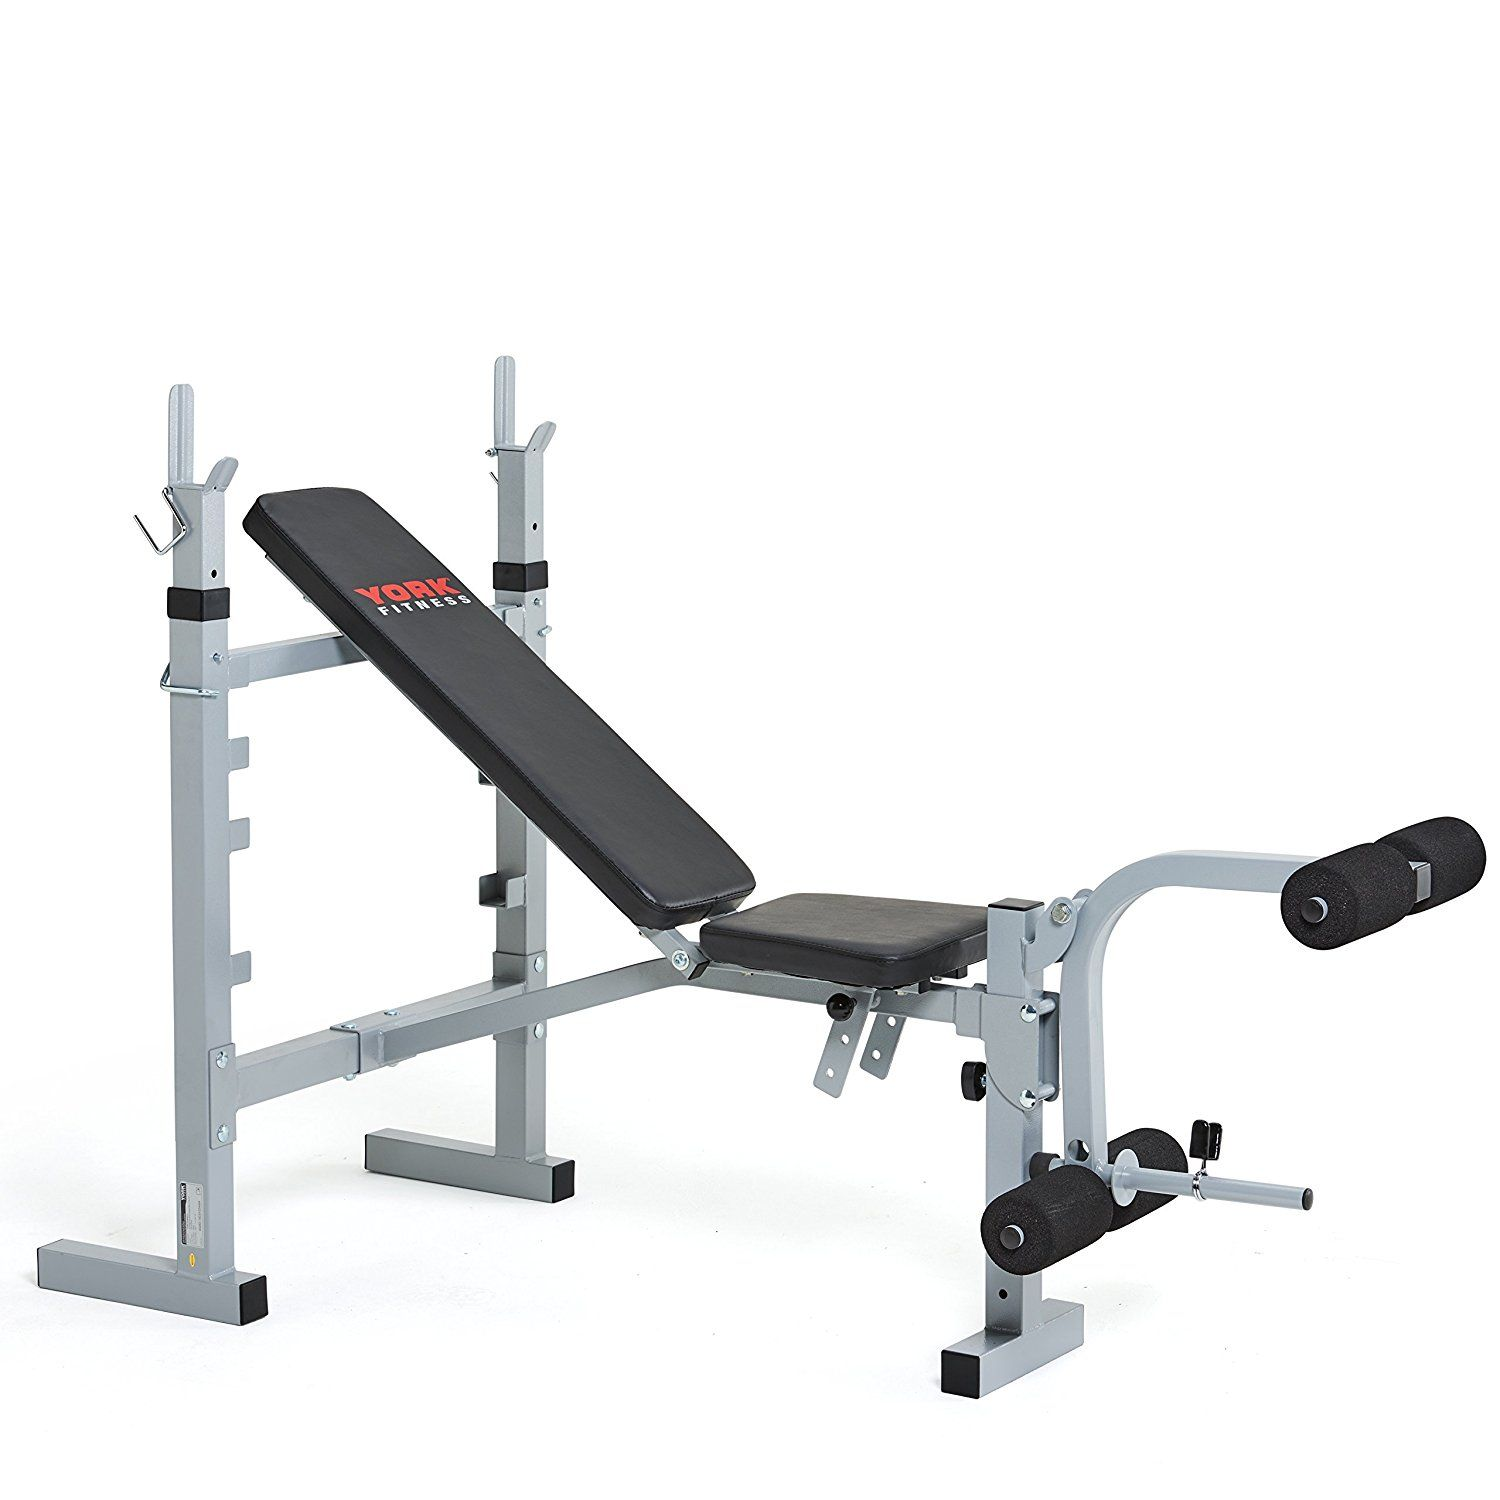 Groovy York Fitness B530 Heavy Duty Incline And Decline Bench Gmtry Best Dining Table And Chair Ideas Images Gmtryco